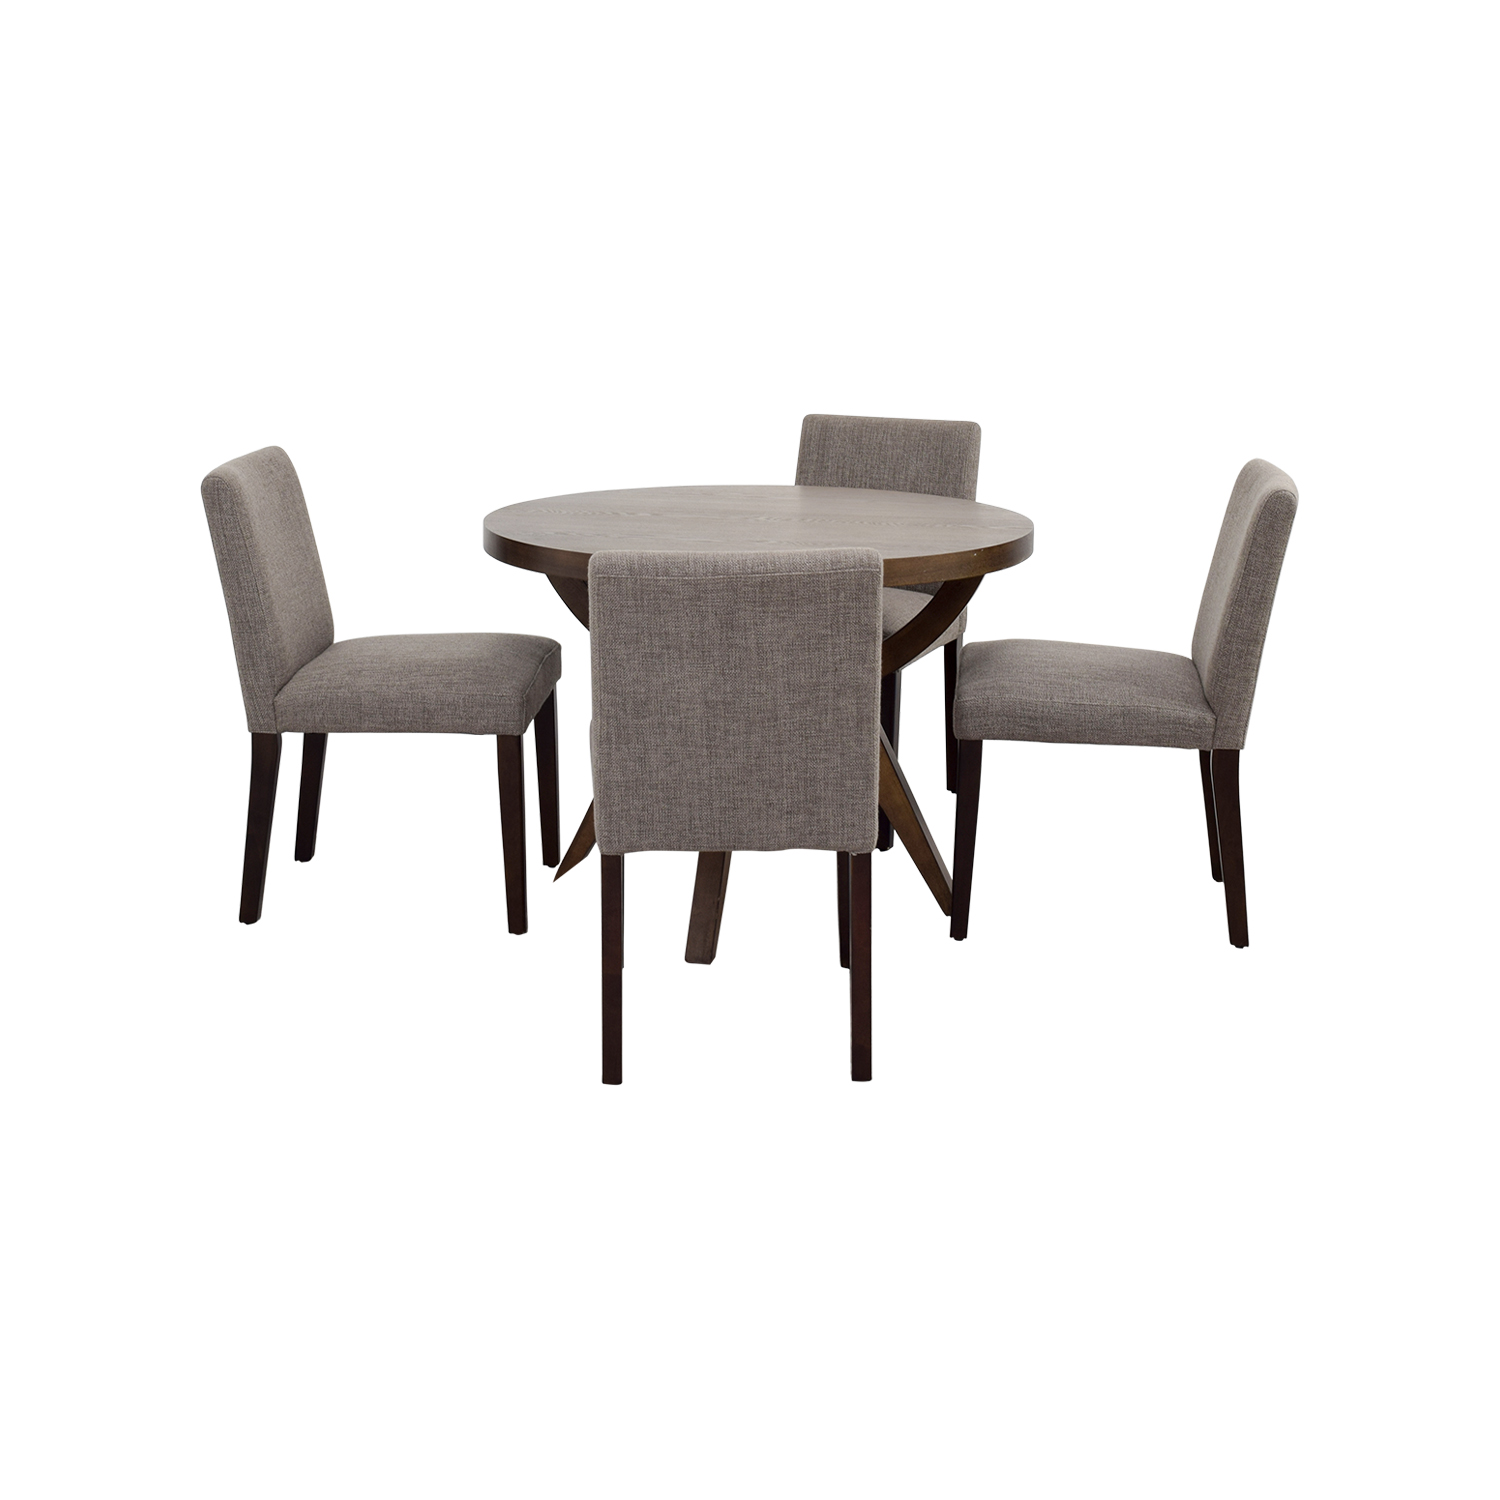 West Elm West Elm Arc Base Pedestal Table and Chairs for sale